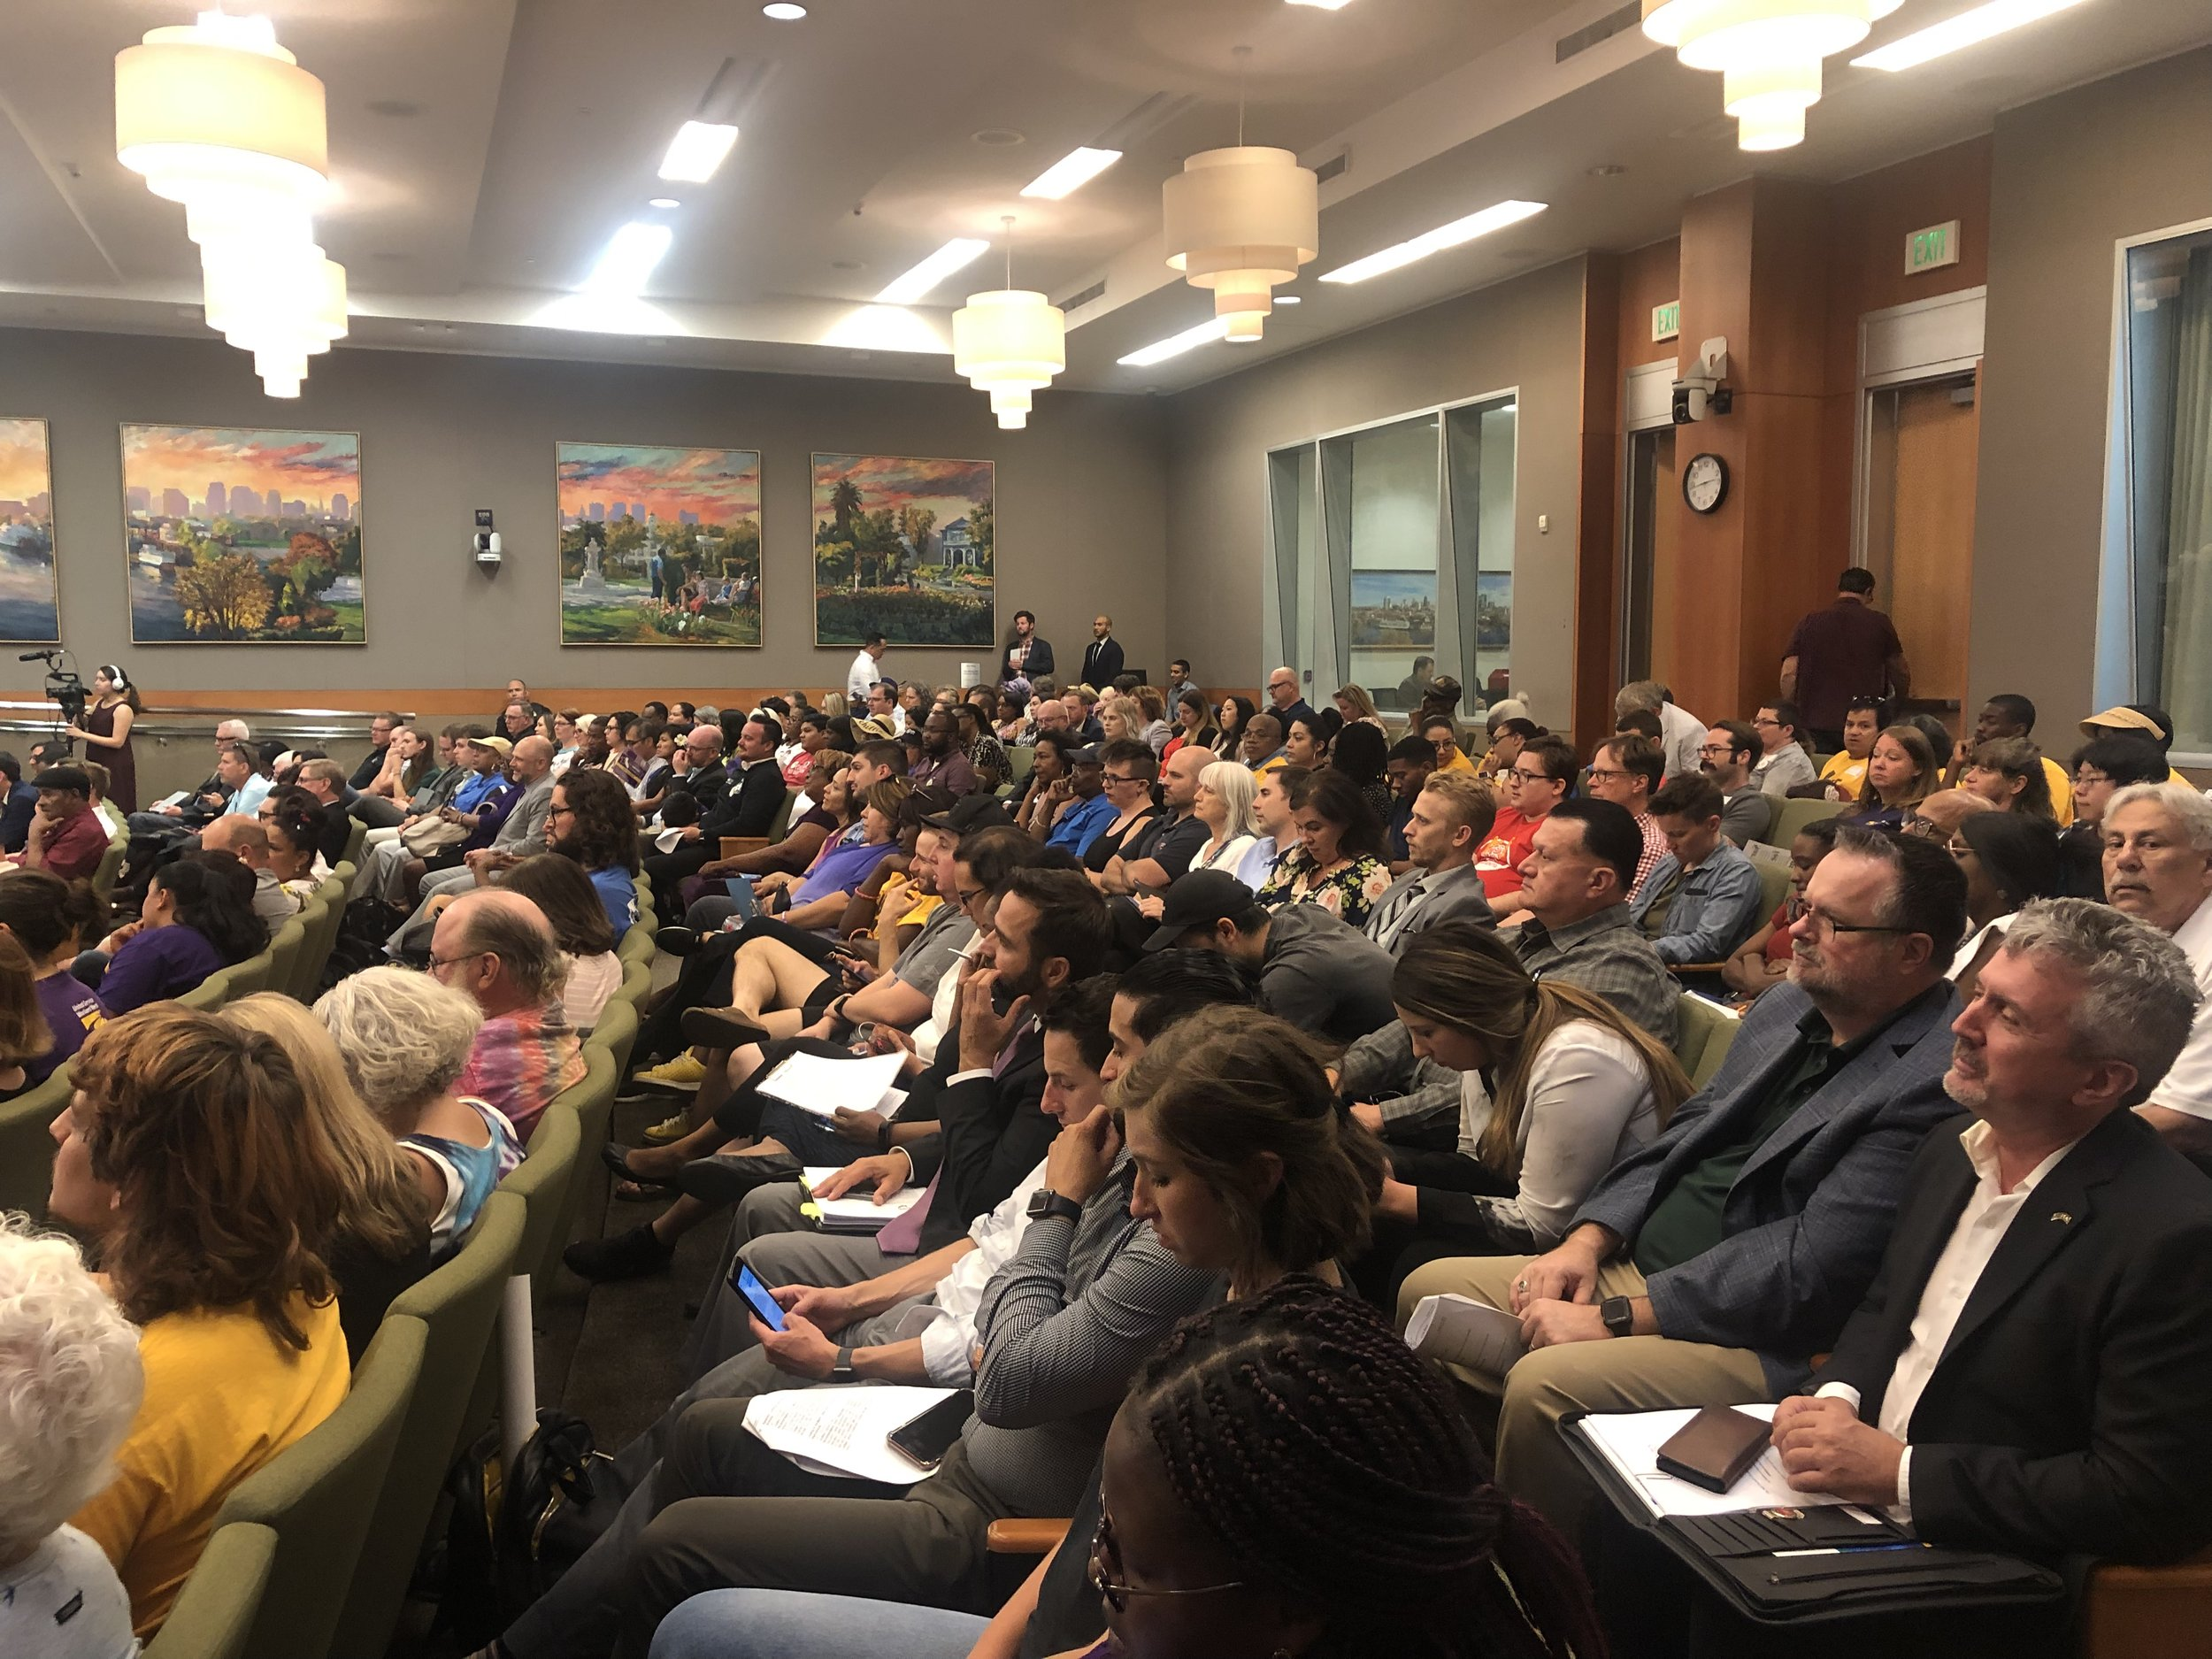 The City Council chambers was packed for the August vote on new renter protections